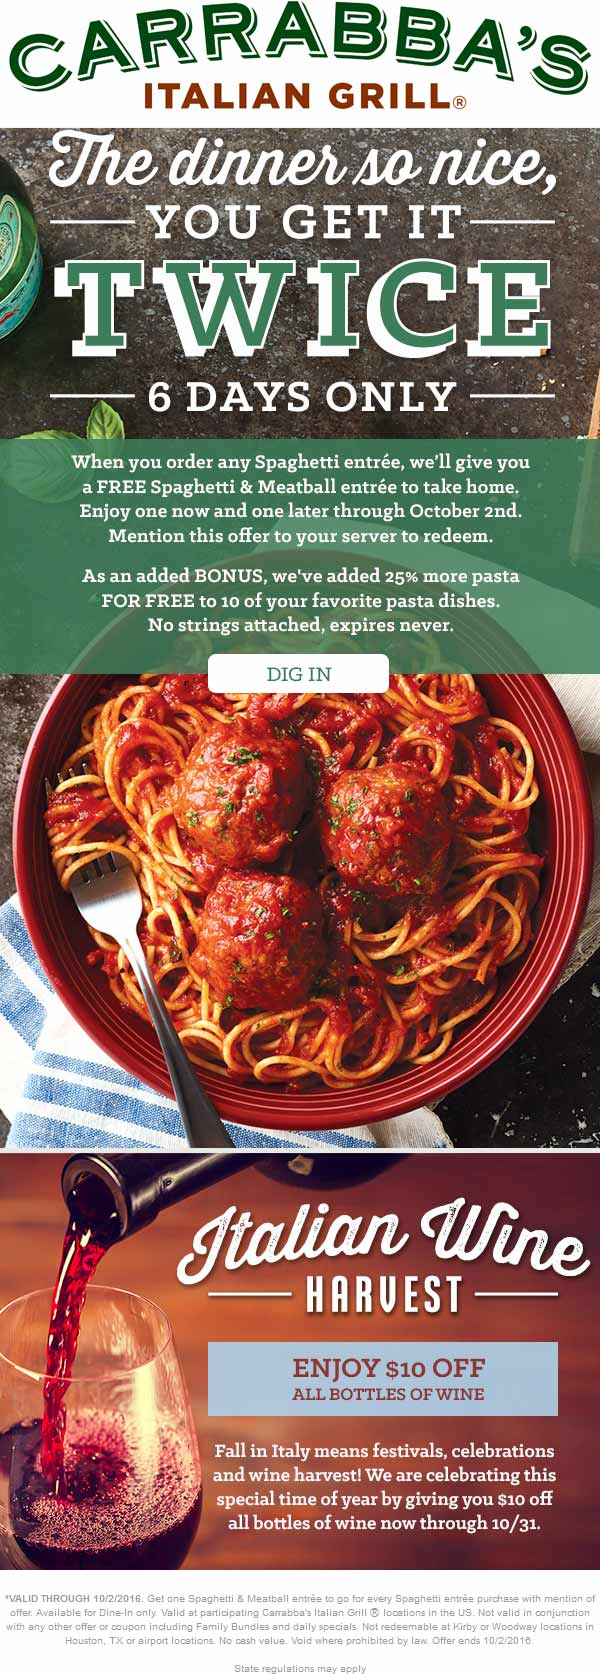 Carrabbas Coupon November 2017 Second spaghetti & meatballs free as takeout at Carrabbas restaurants